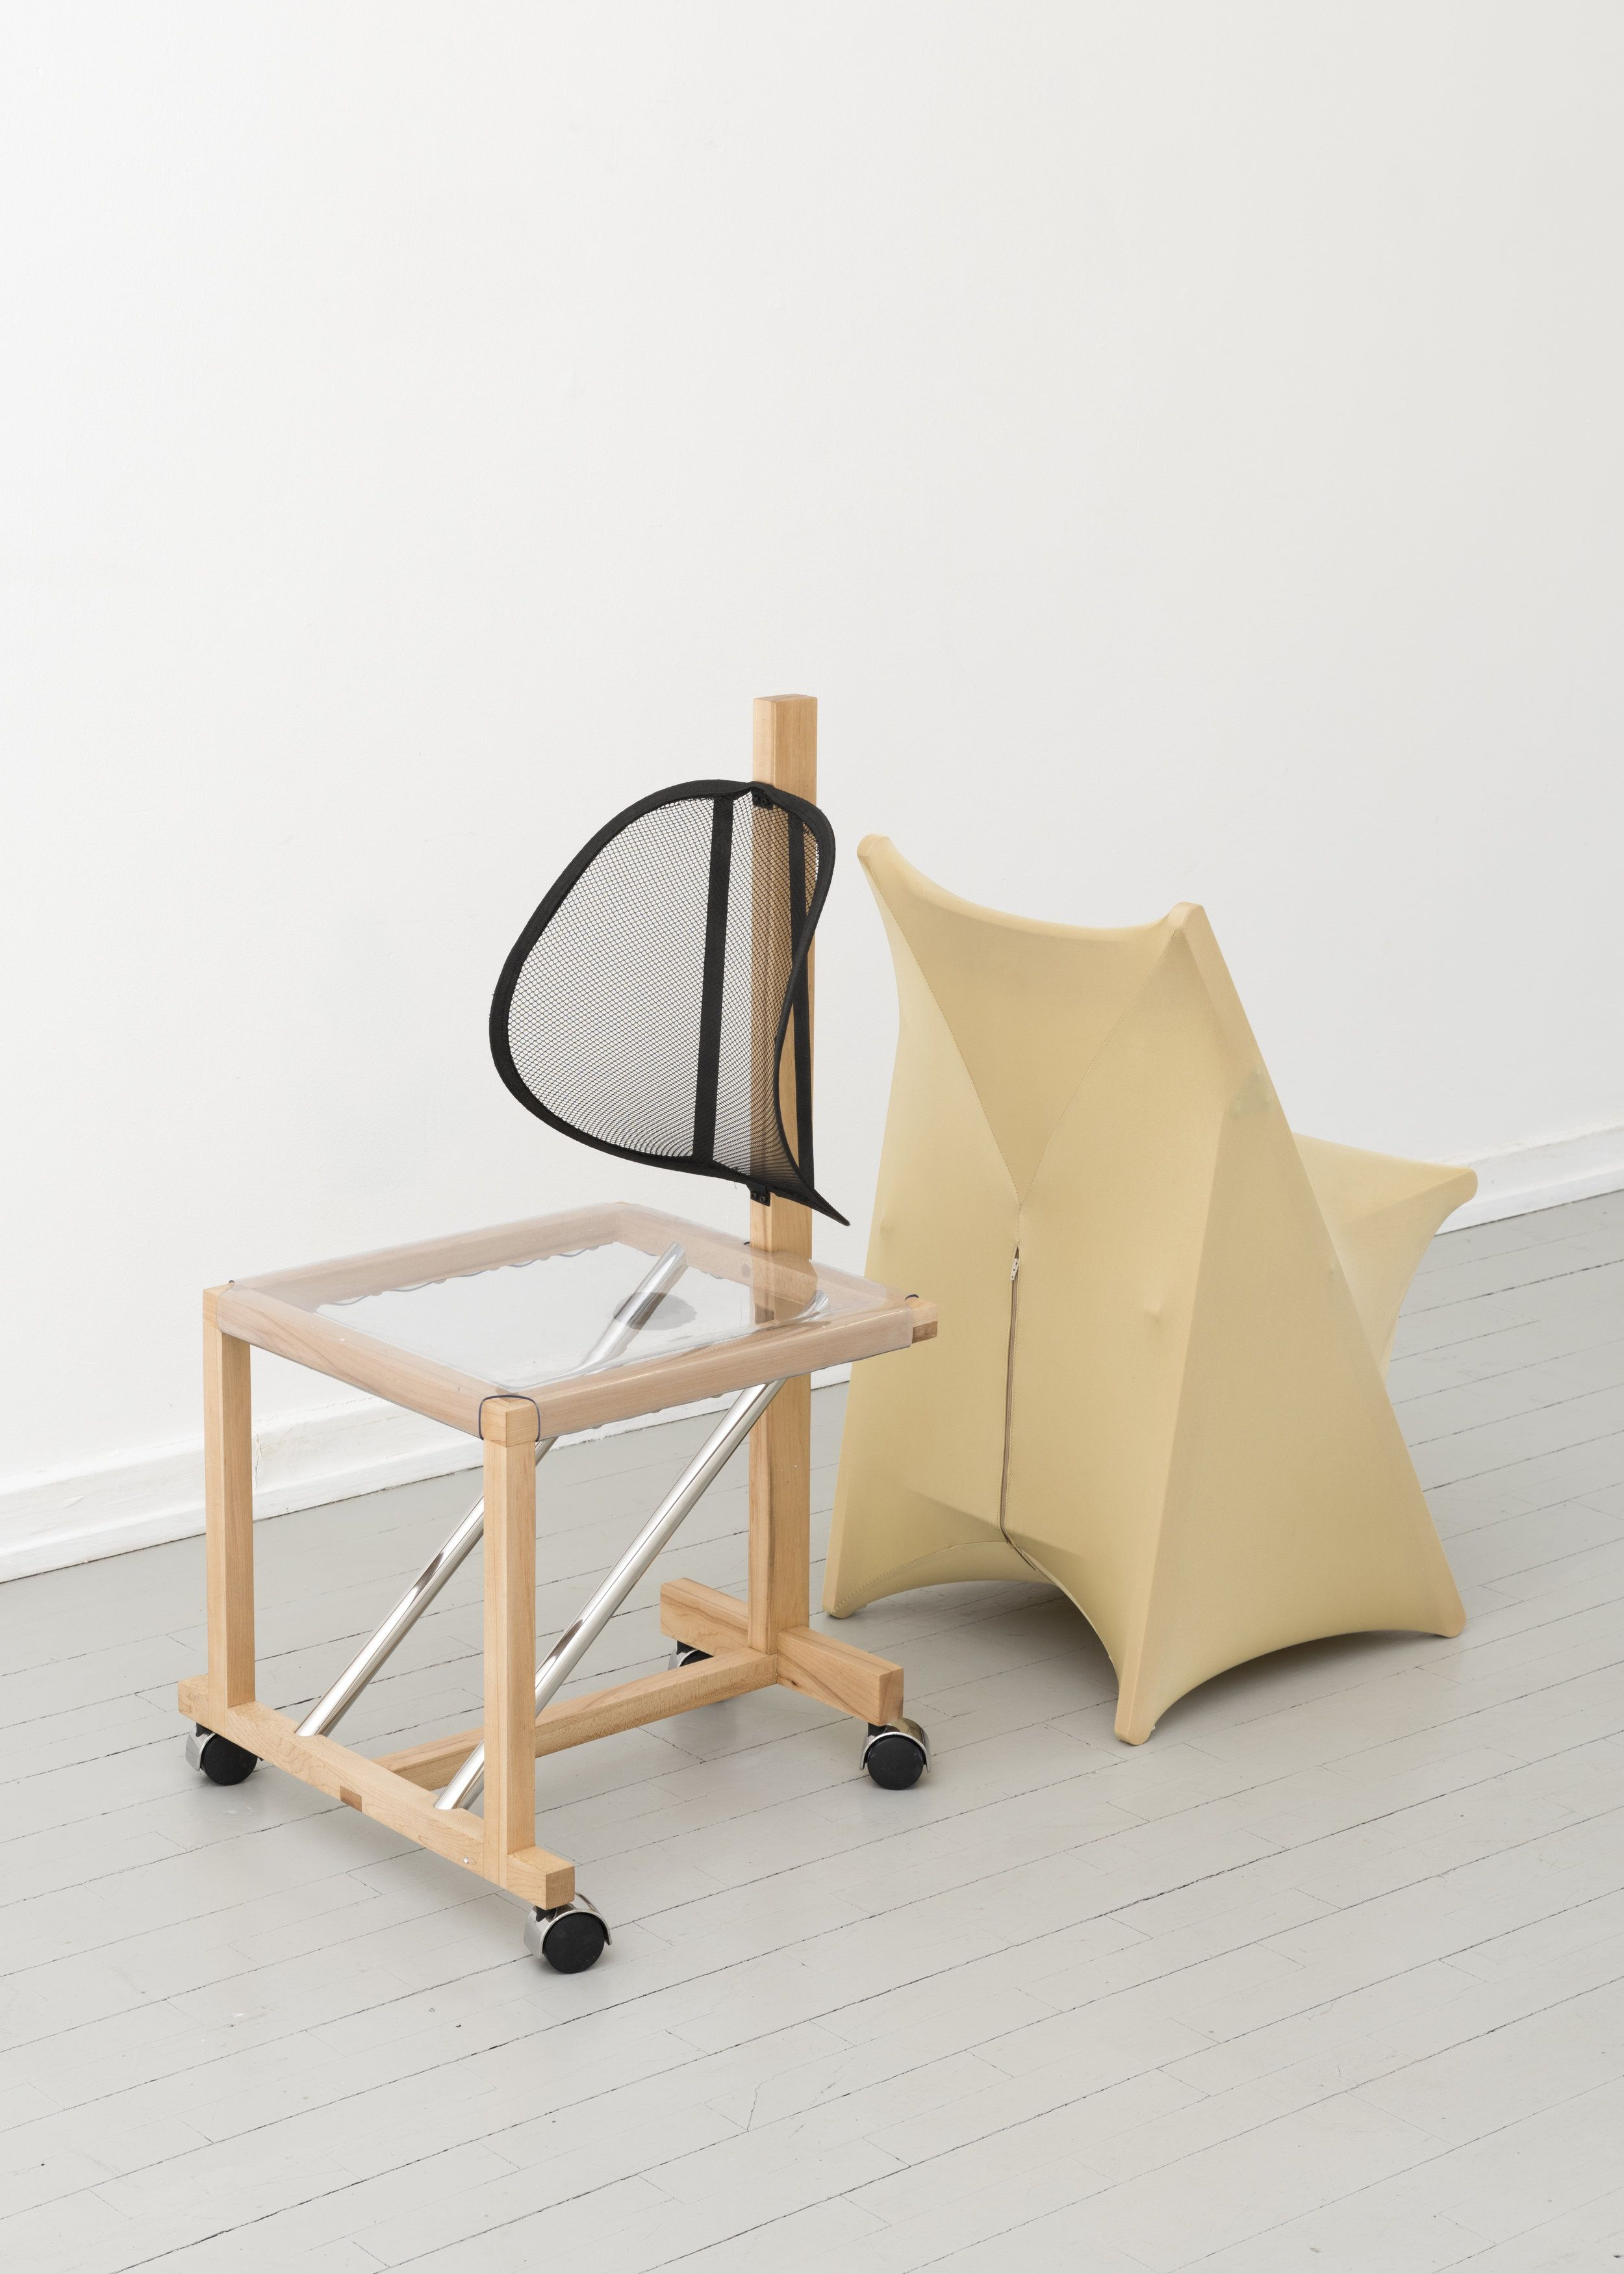 Fredrik Paulsen Dzgn Pinterest Plywood Armchairs And  # Meble Narcisse